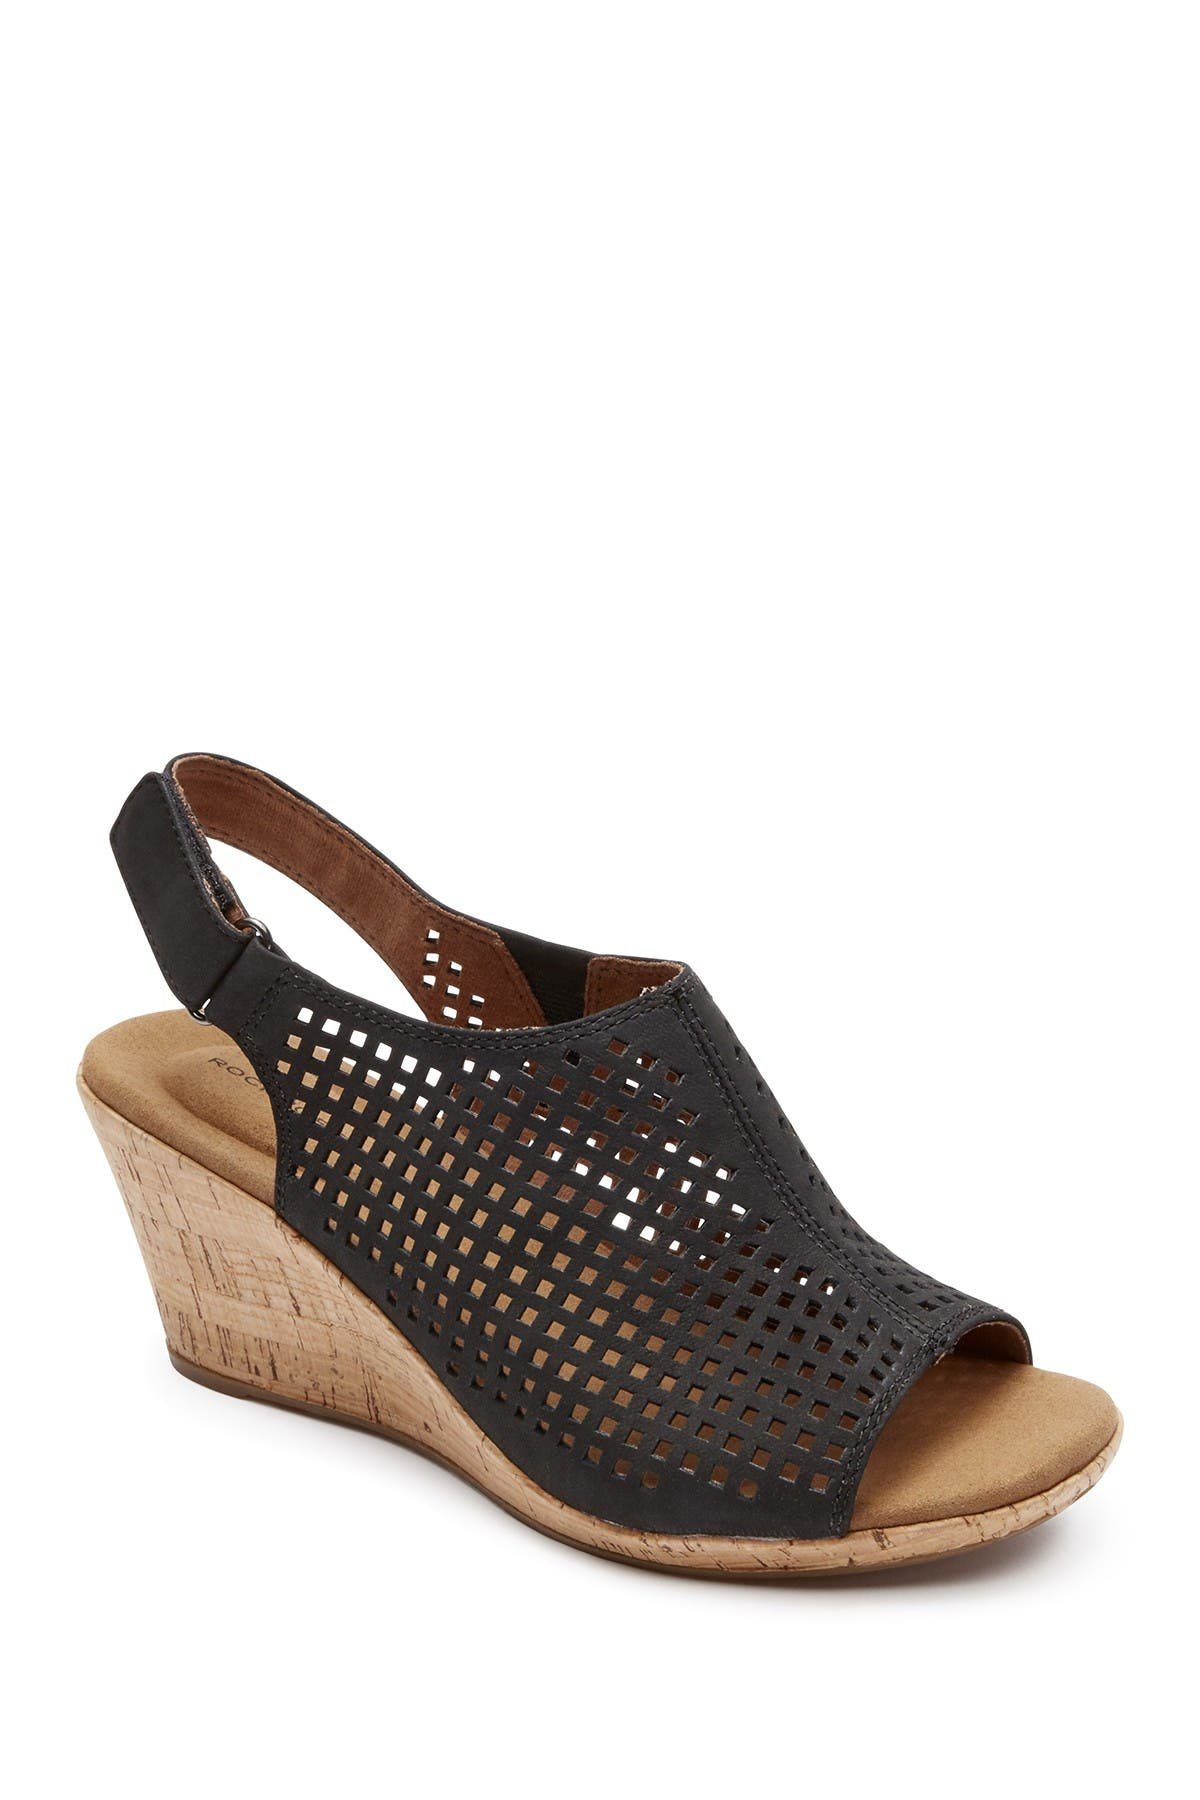 Image of Rockport Briah Perforated Wedge Sandal - Wide Width Available